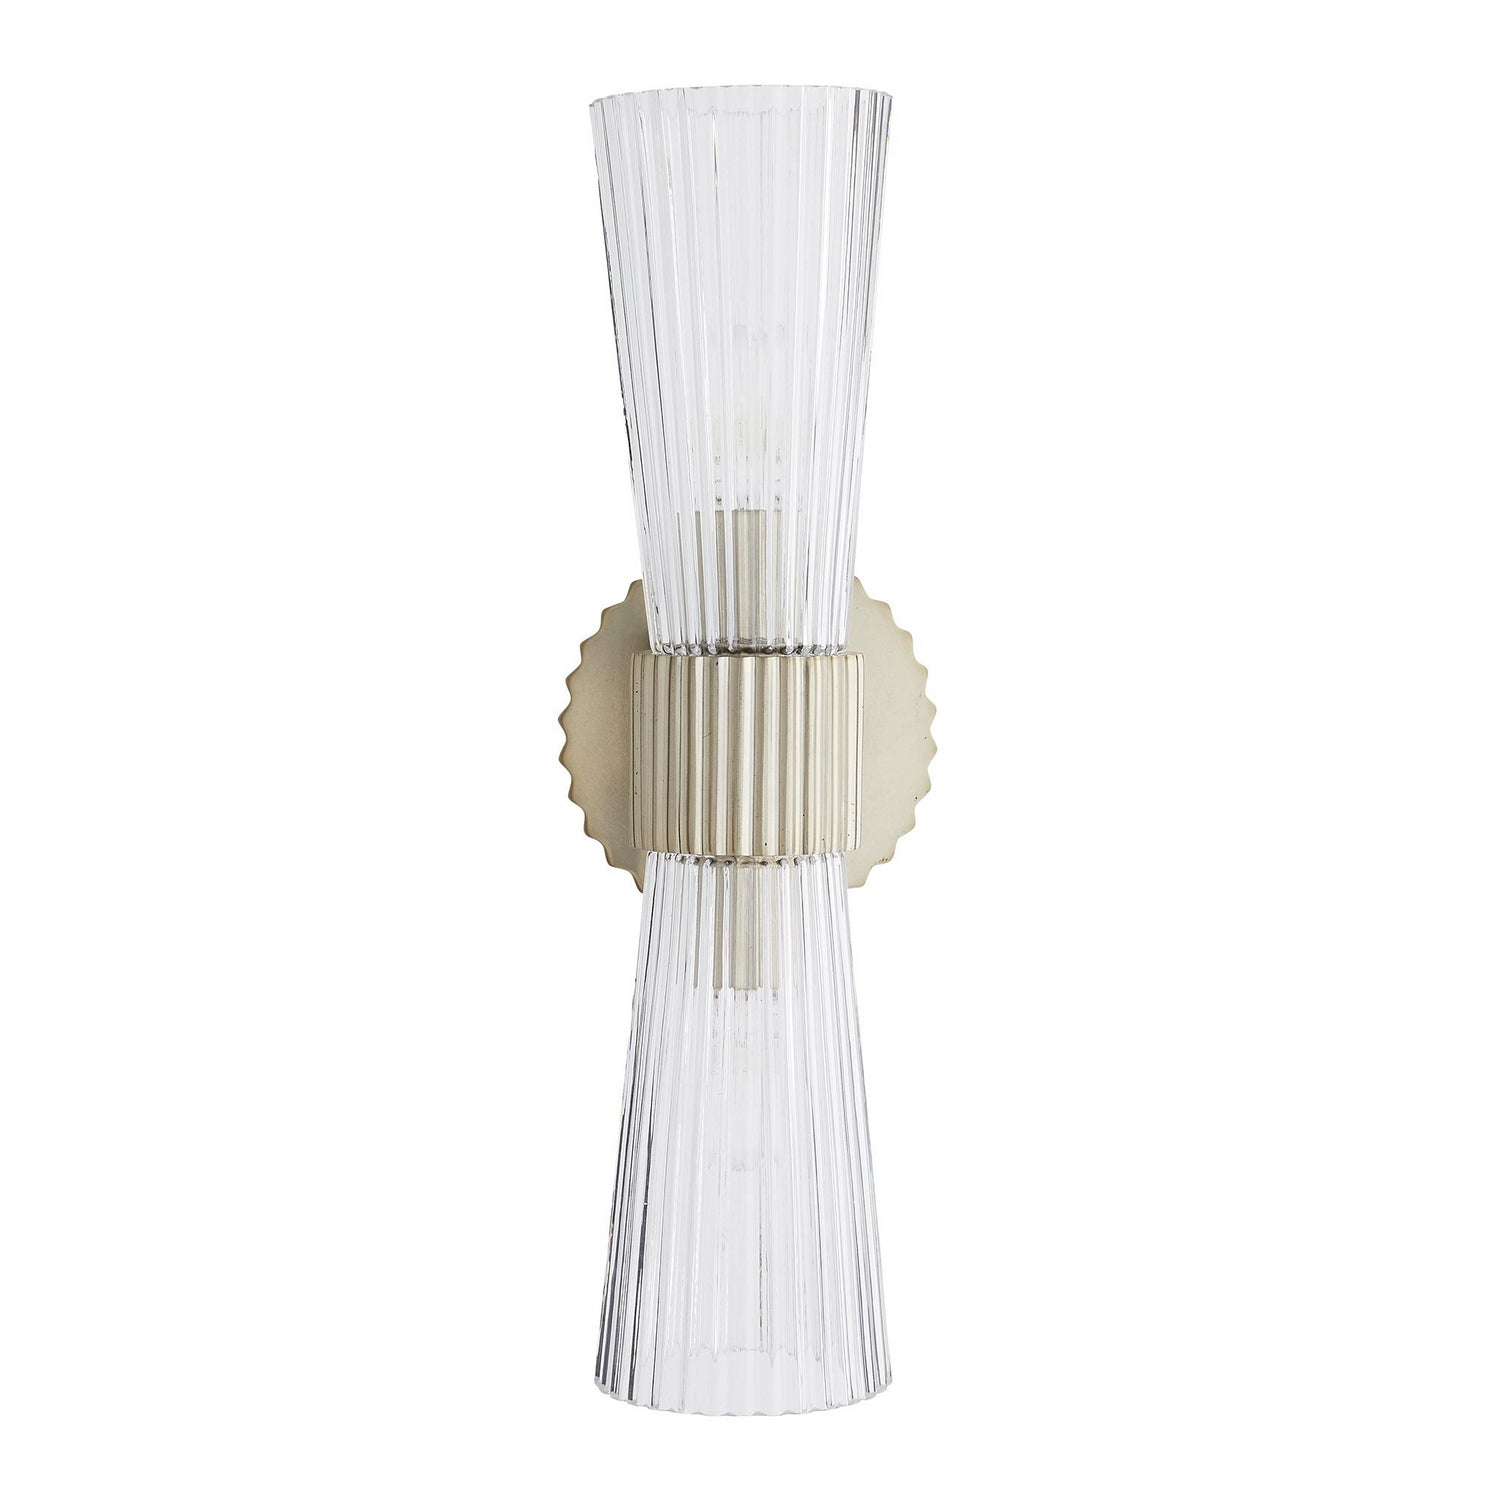 Arteriors - Two Light Wall Sconce - Whittier - Fluted Clear